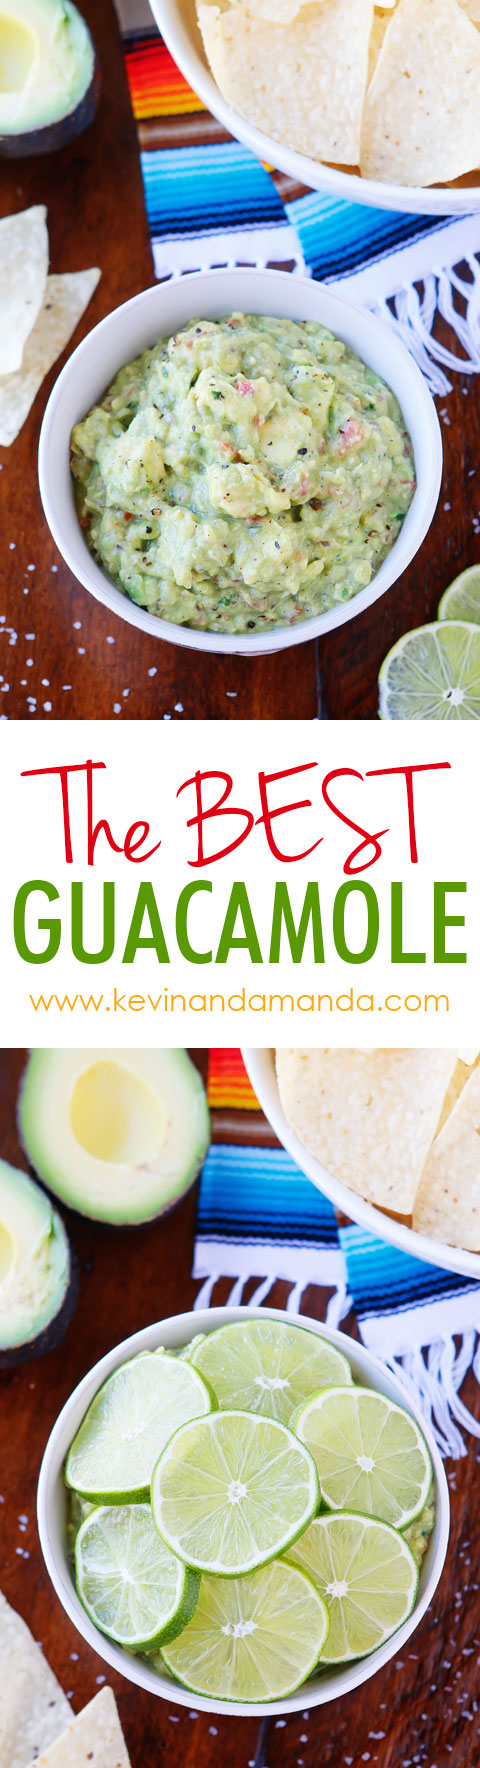 Why didn't I think of this?? Great trick for keeping guacamole fresh all night long!! Just take off one lime at a time!